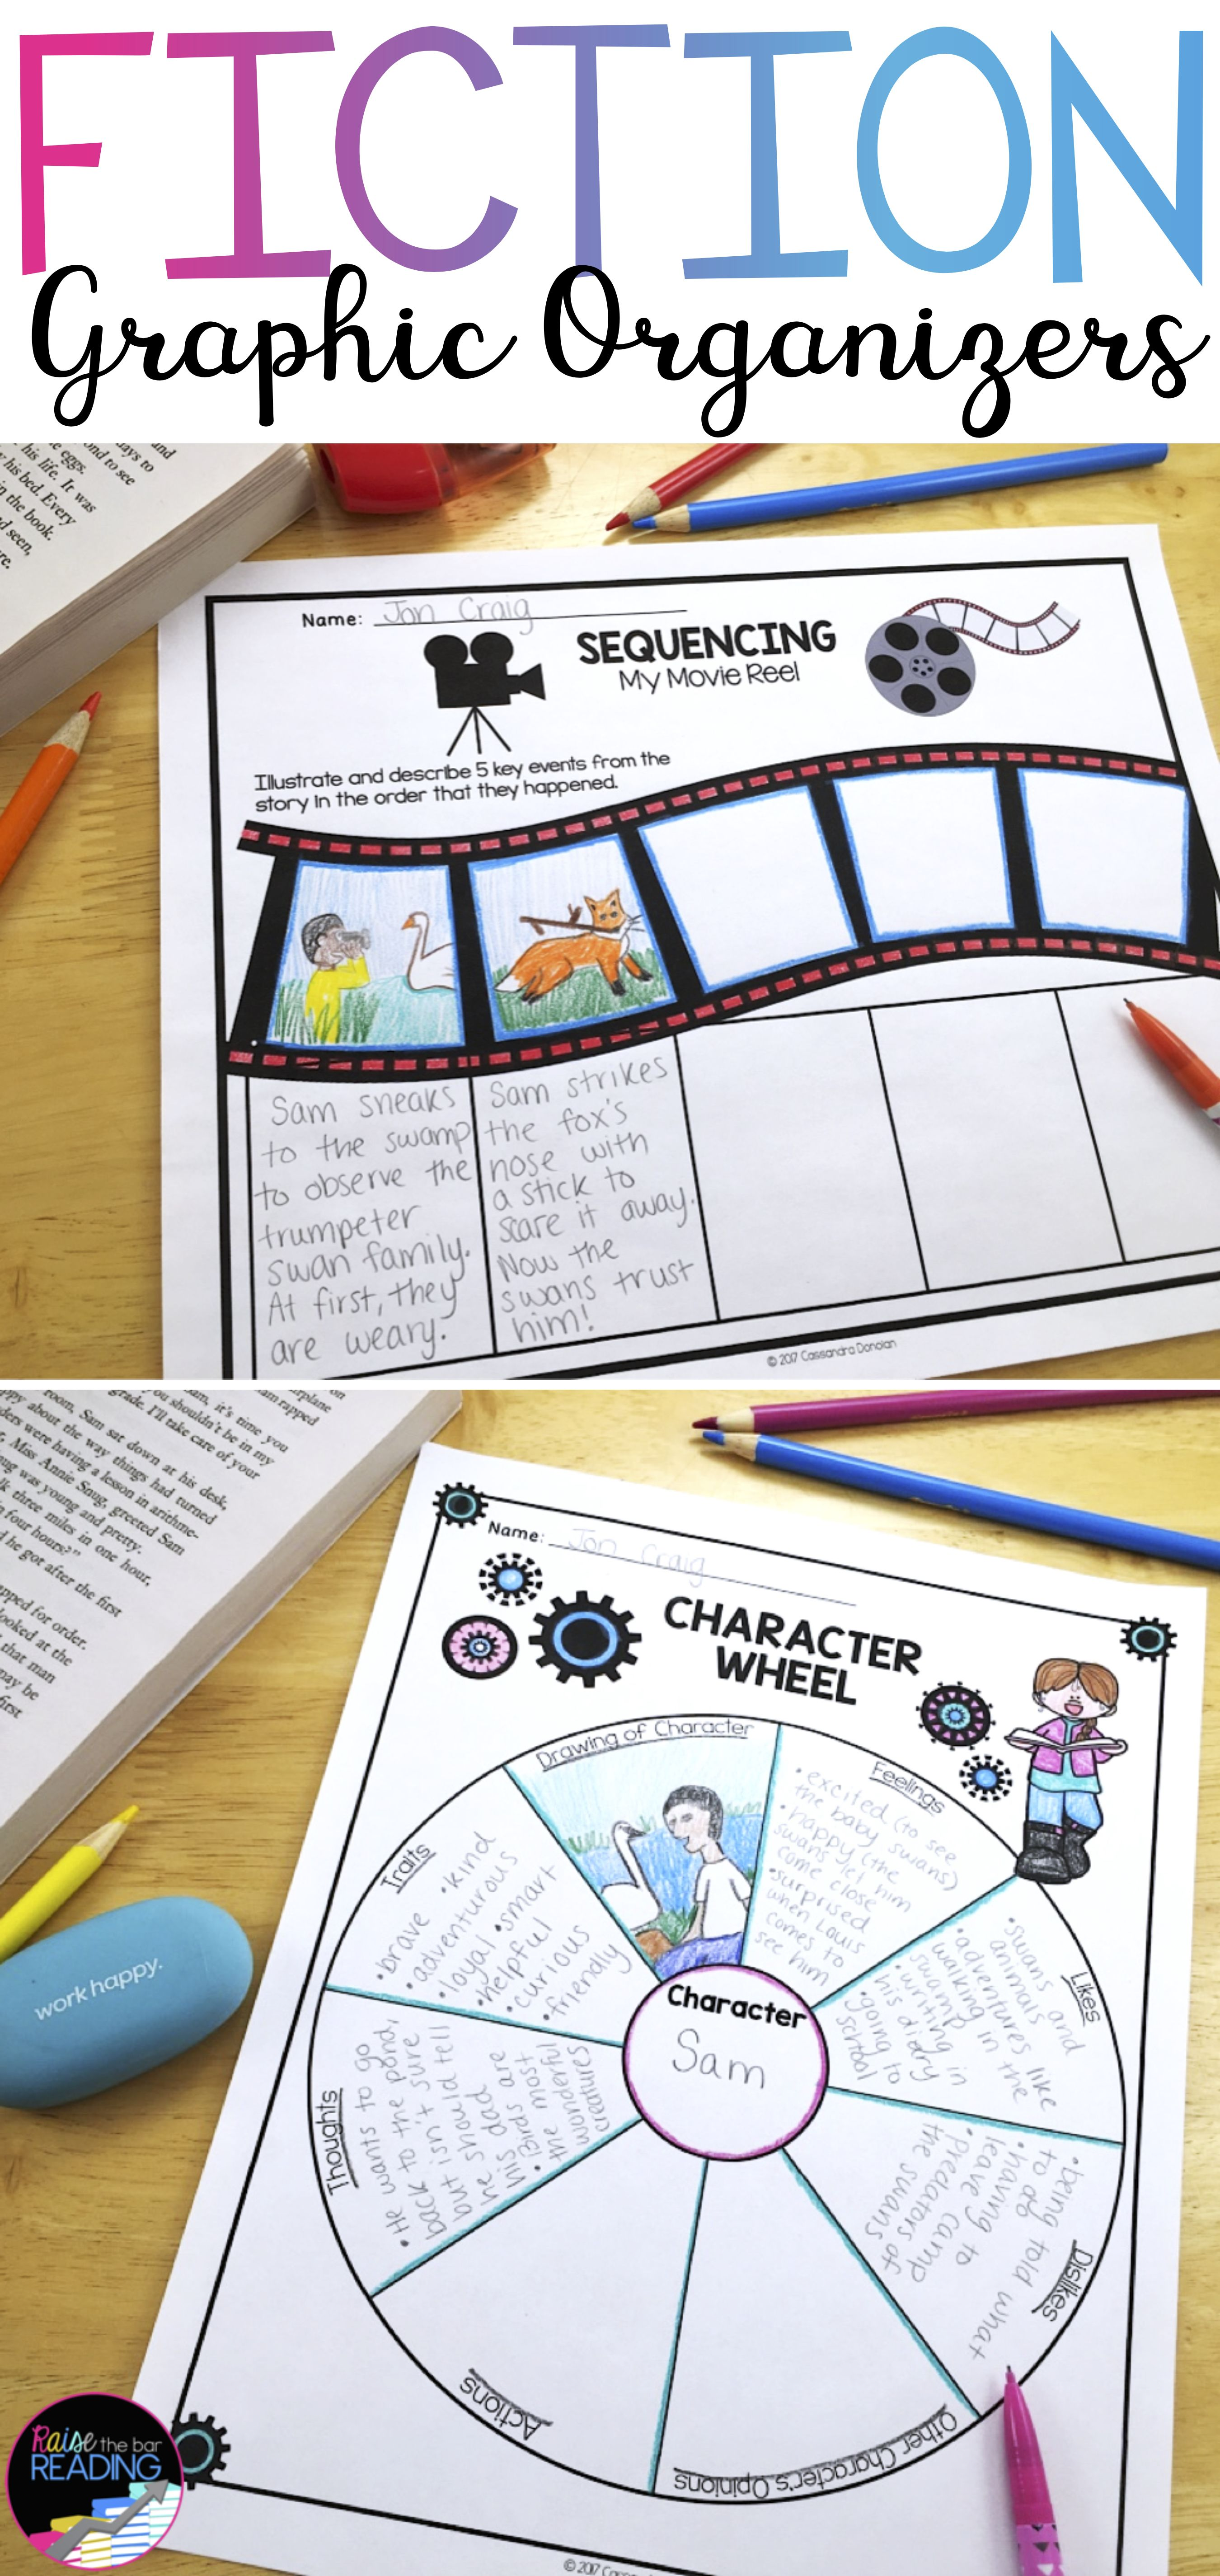 Reading Literature Or Fiction Graphic Organizers Reading Response Worksheets